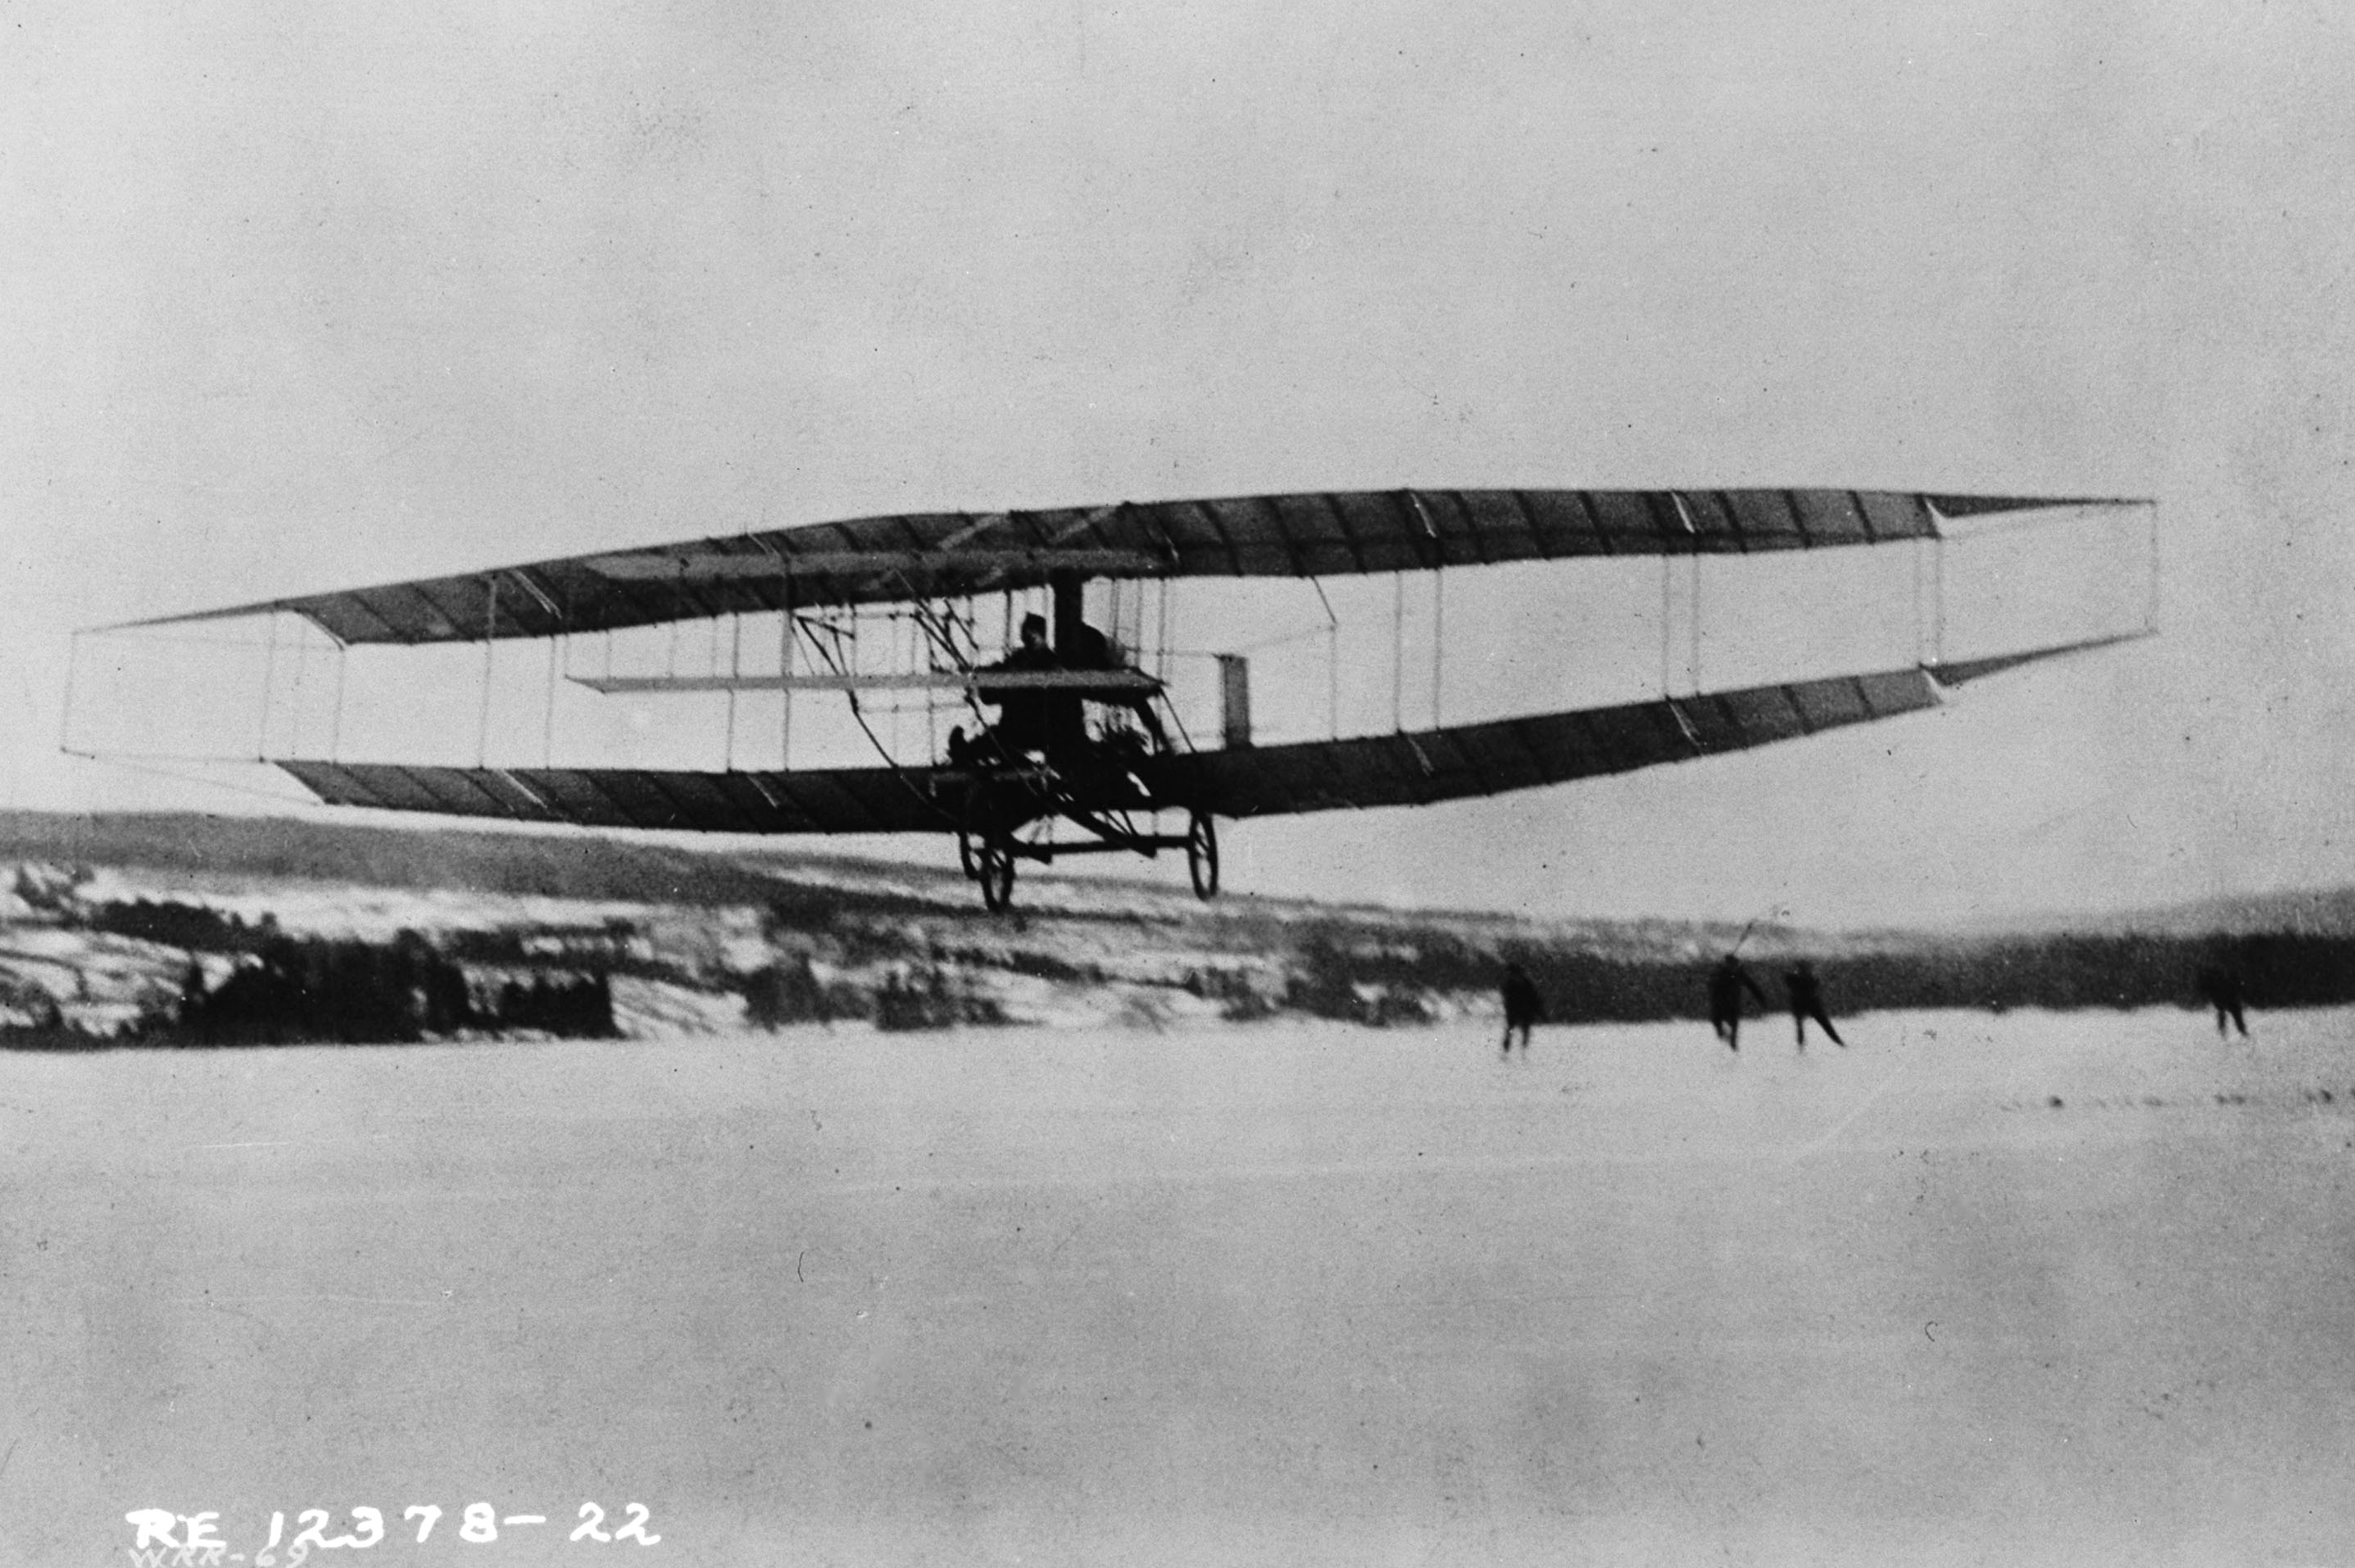 J.A.D. McCurdy takes flight in the Silver Dart – the British Empire's first powered, heavier-than-air flight – on February 23, 1909, in Baddeck, Nova Scotia. PHOTO: DND Archives, RE-12378-22